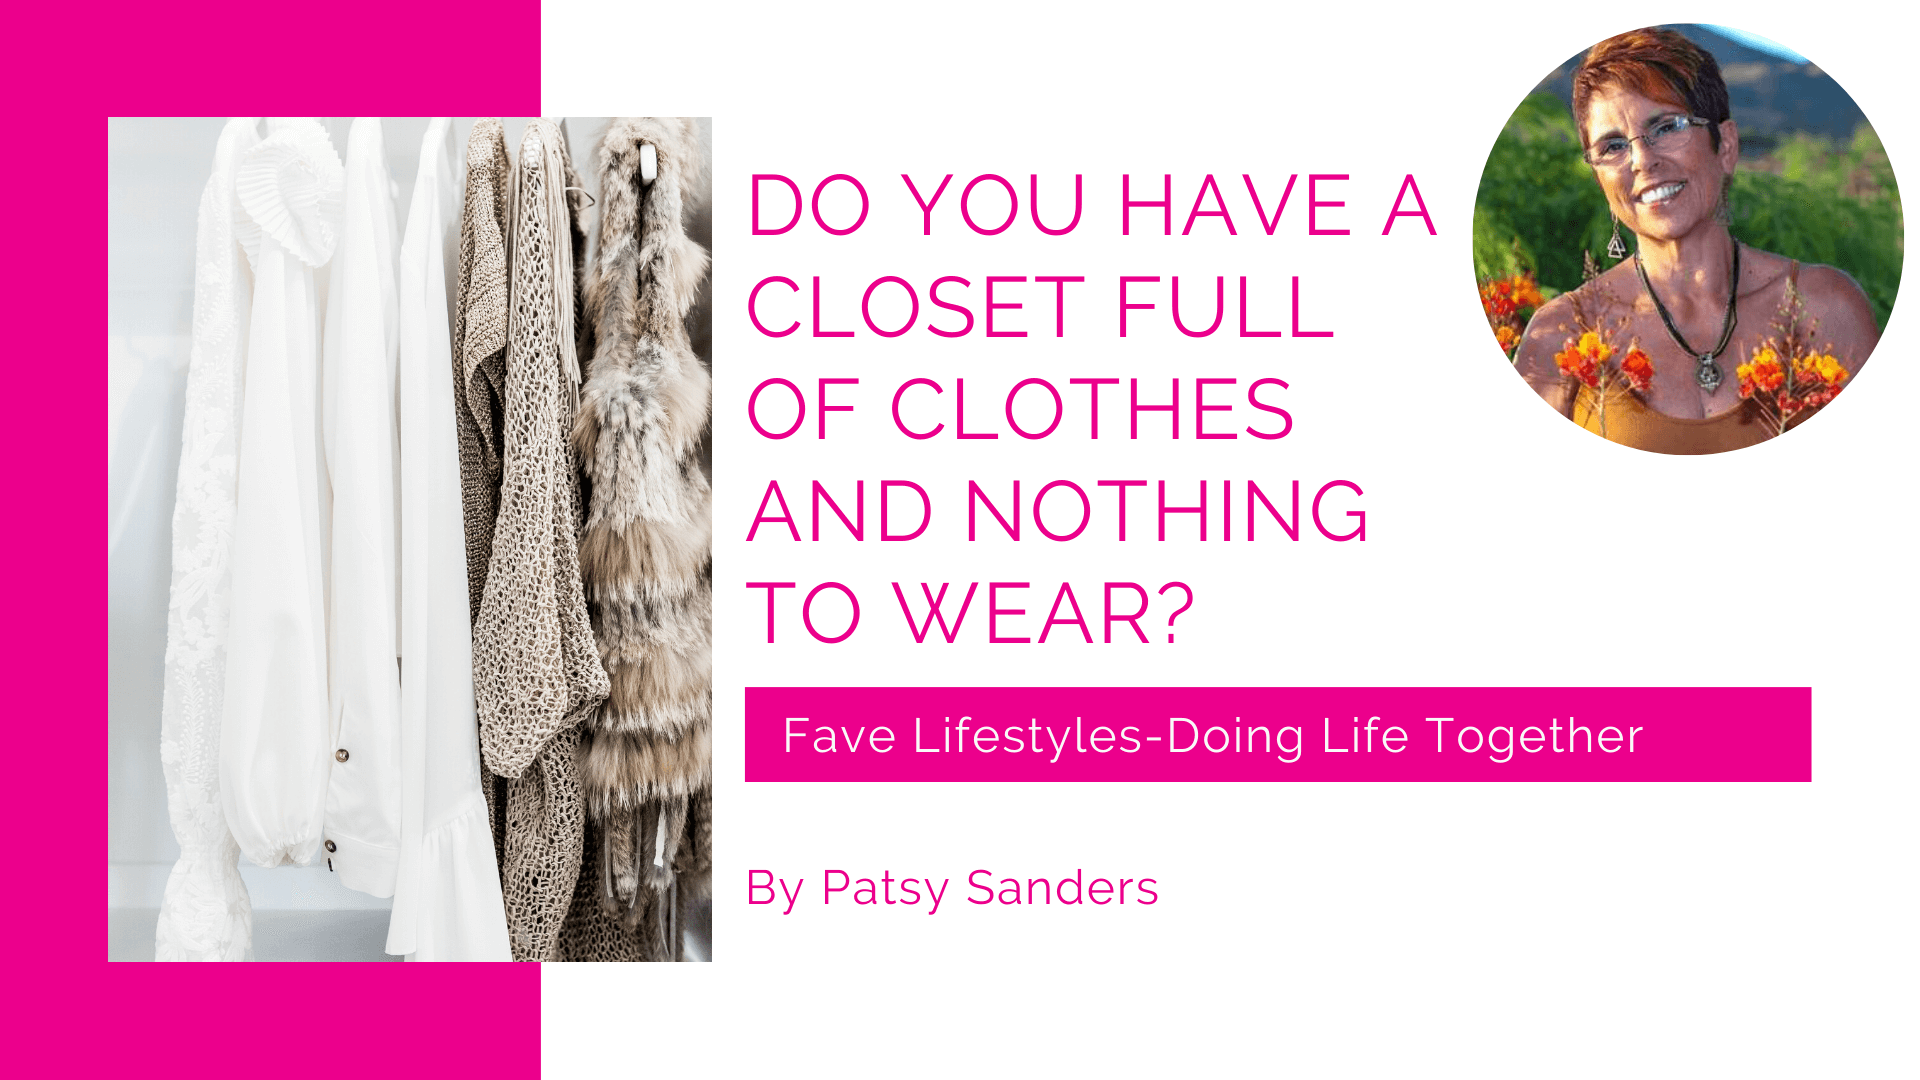 Do you have a Closet Full of Clothes and Nothing to Wear?